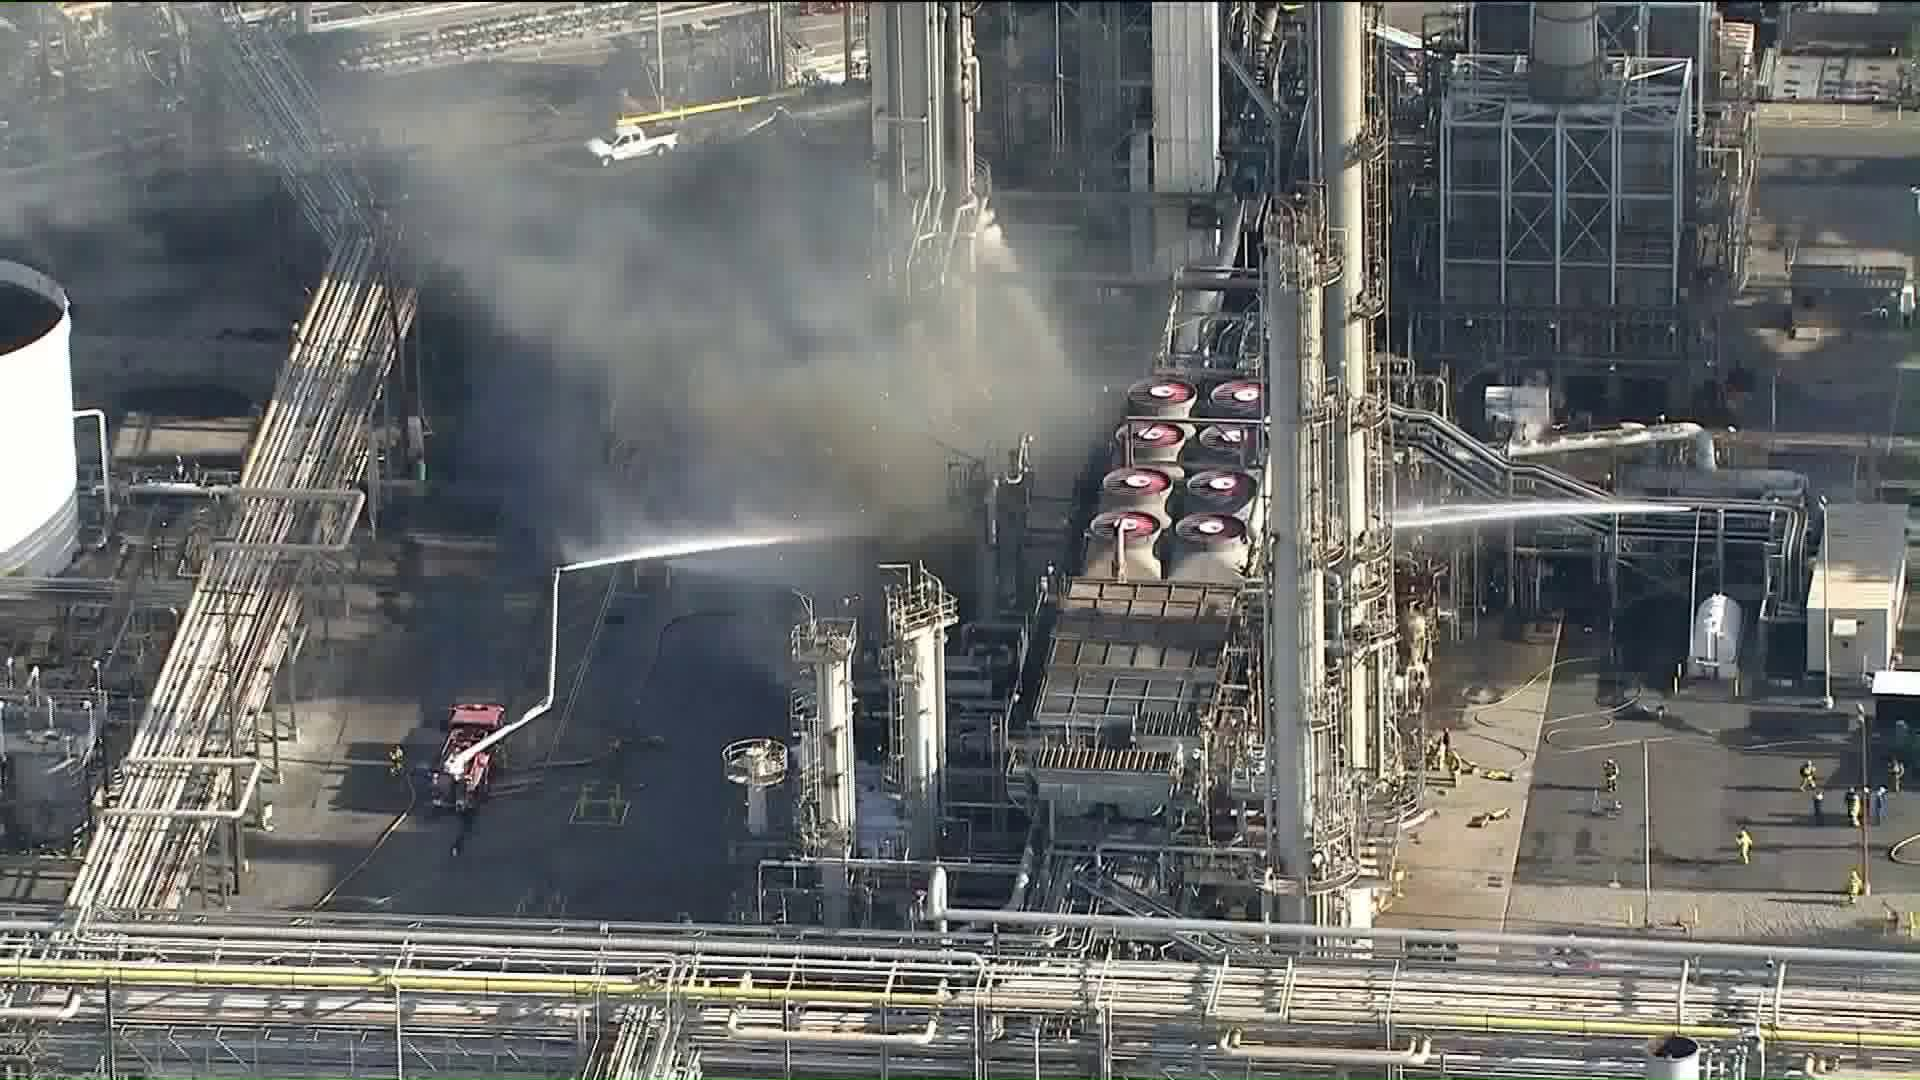 Fire crews respond to a fire at the Phillips 66 refinery in Carson on May 2, 2019. (Credit: KTLA)